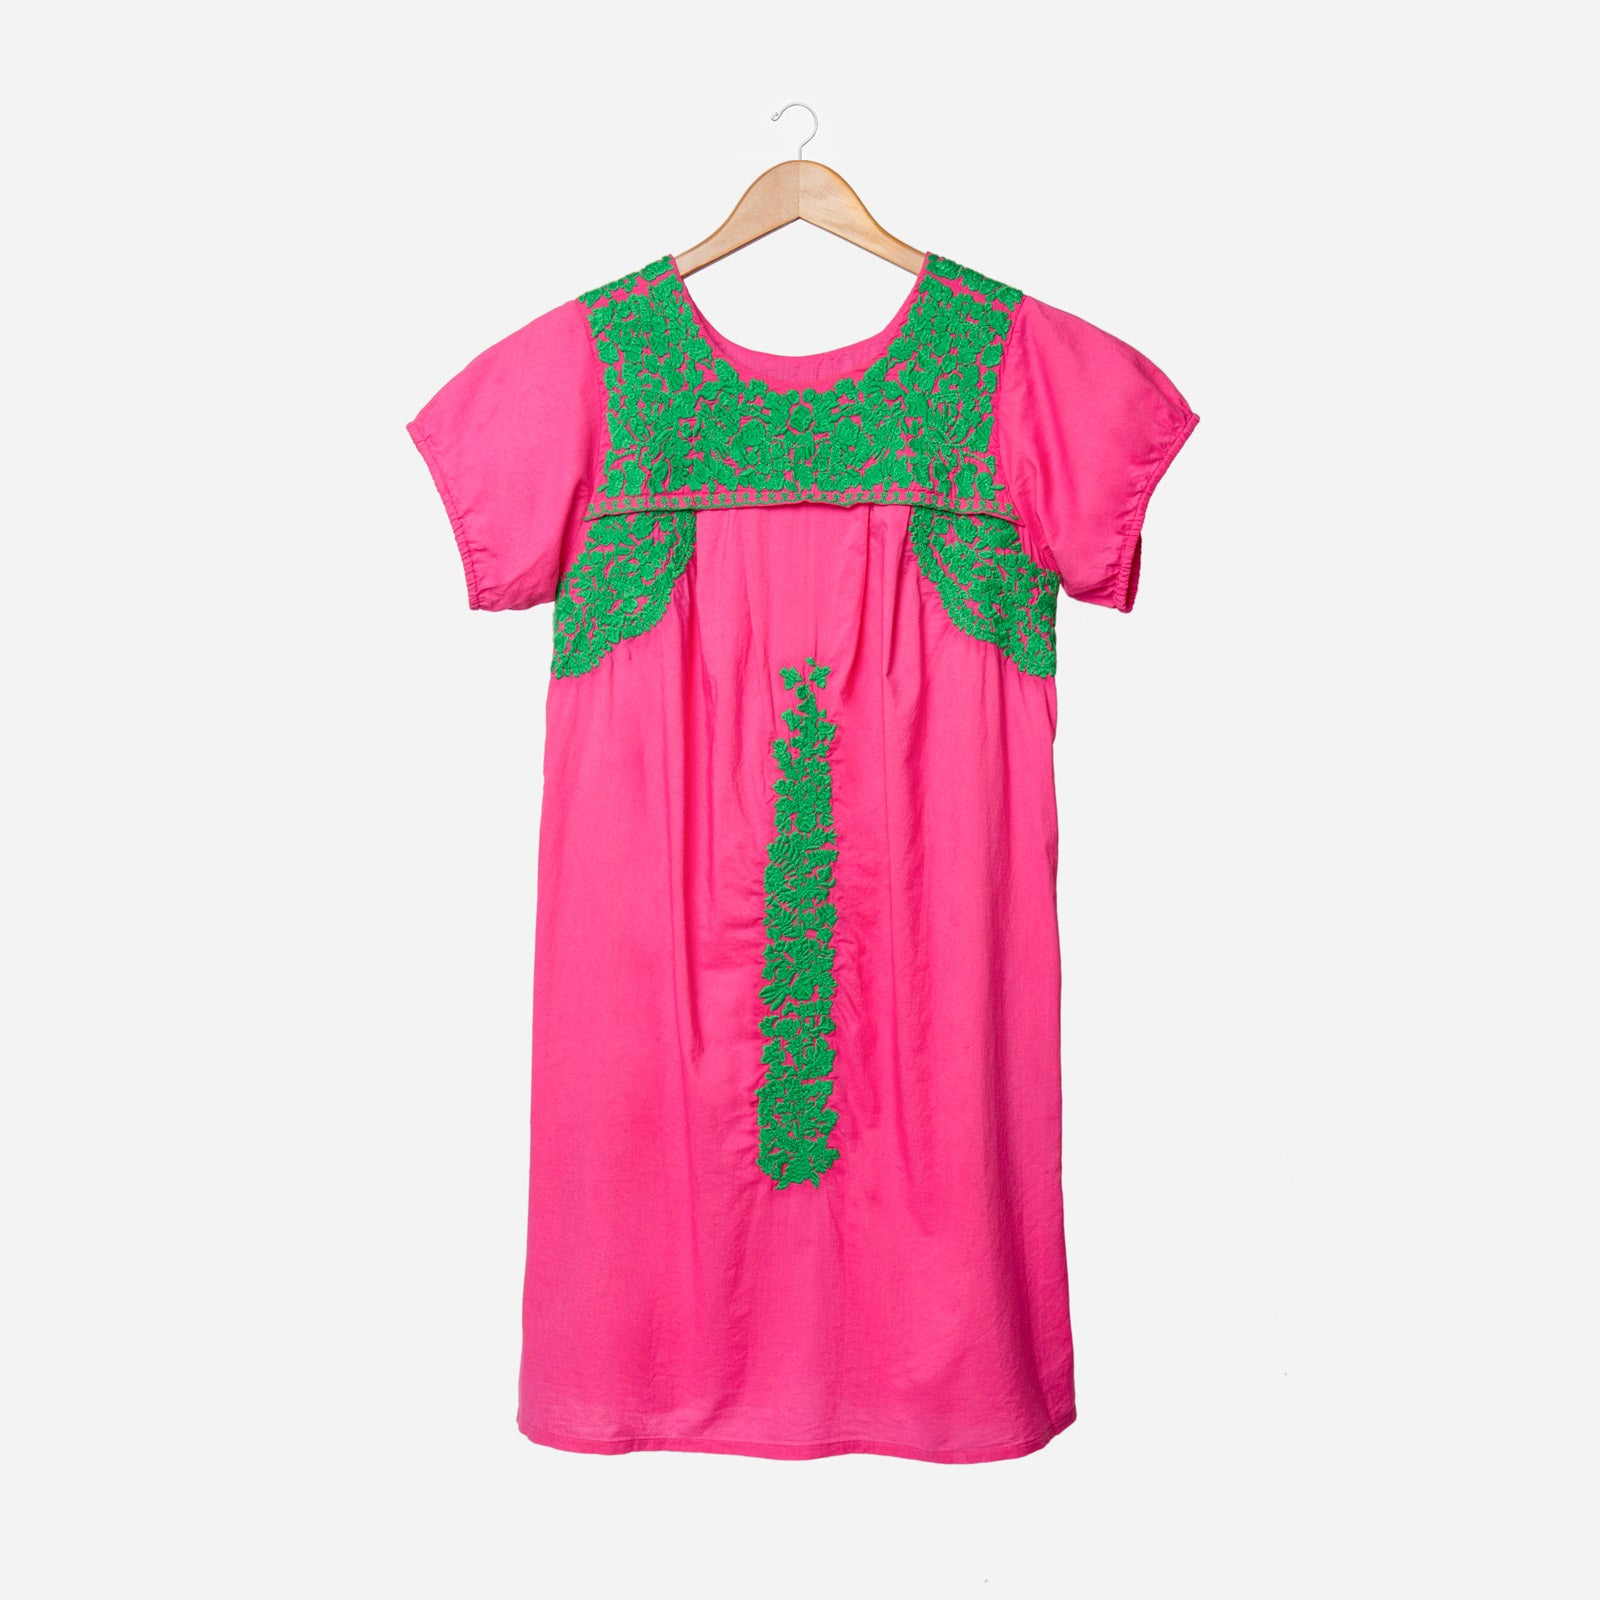 Floral Embroidered Lace Dress Pink Green - Frances Valentine